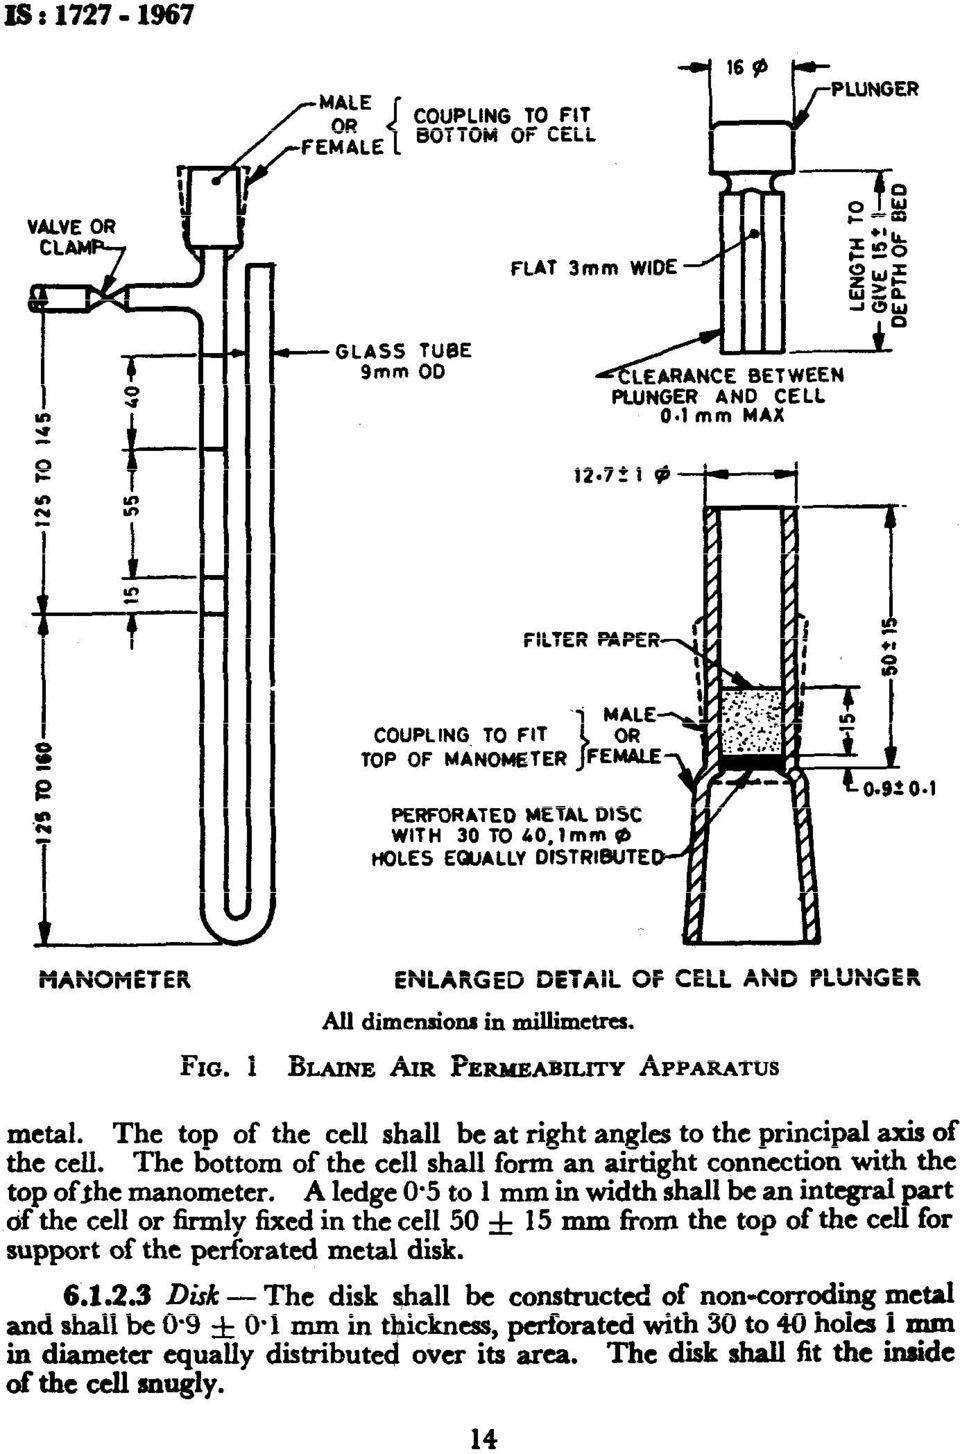 Th e top of the cell shall be at right angles to the principal axis of the cell. Th e bottom of the cell shall form an airtight connection with the top ofjhe manometer. A ledge 0.